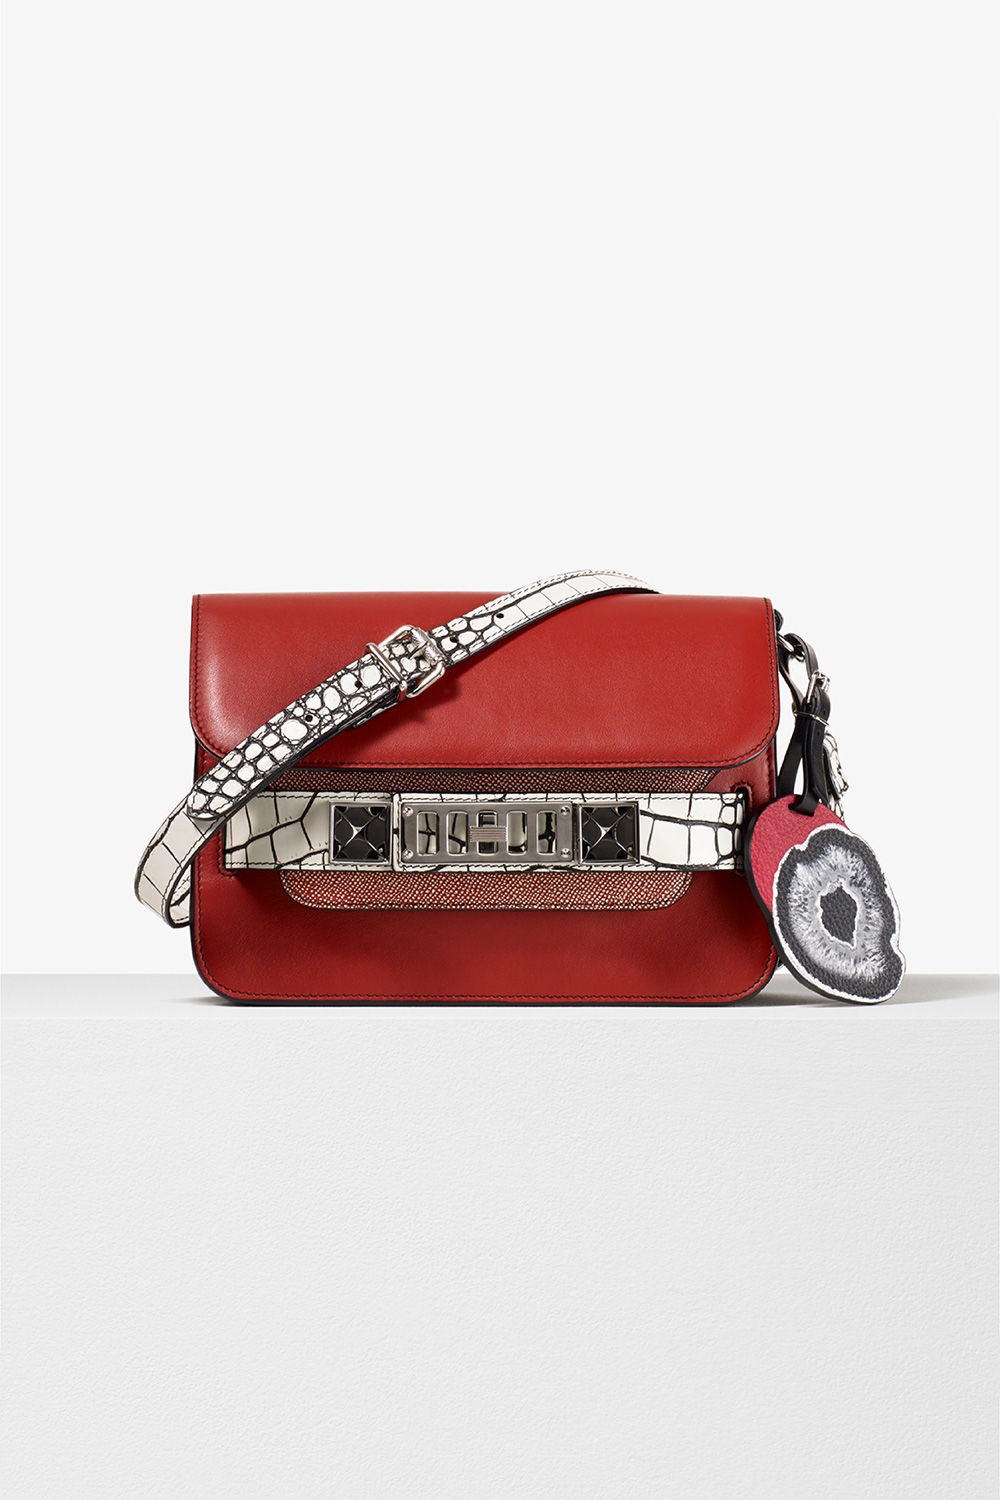 proenza schouler spring 2017 brick white smooth leather minigrain embossed croc ps11 mini classic bag